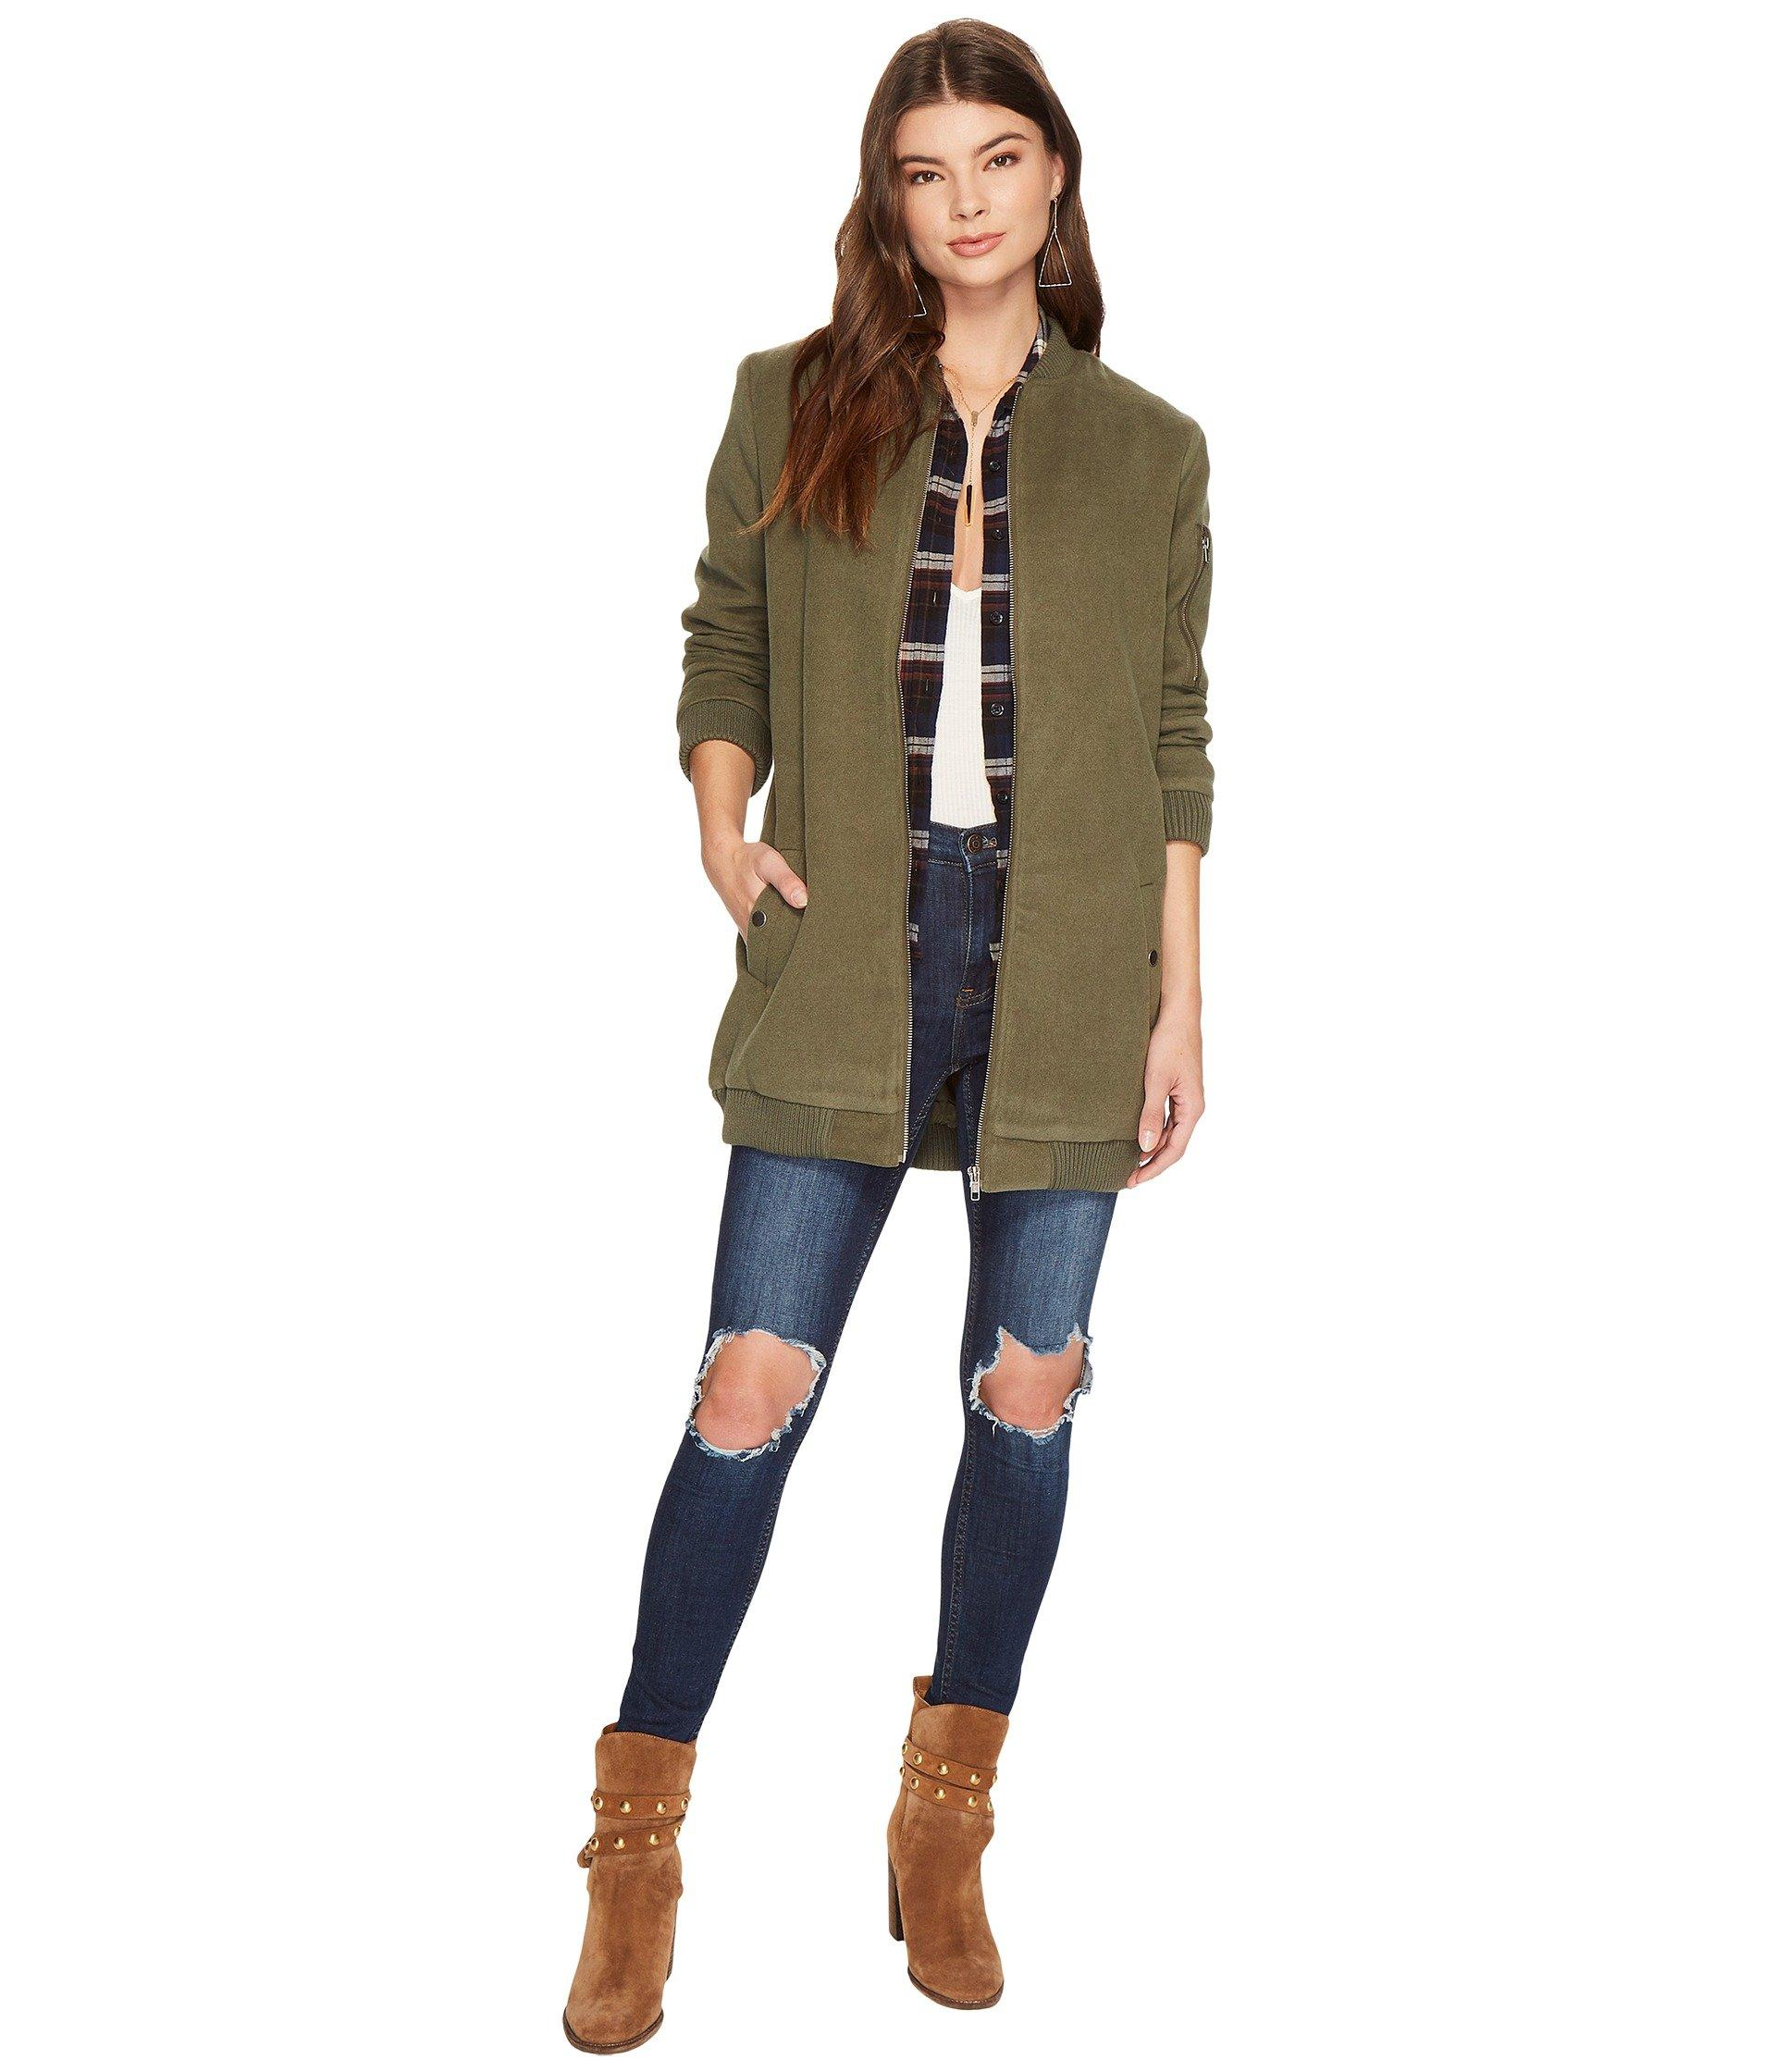 d9cad6844 Aaliyah Long Bomber Jacket With Rib Trim in Beetle Green